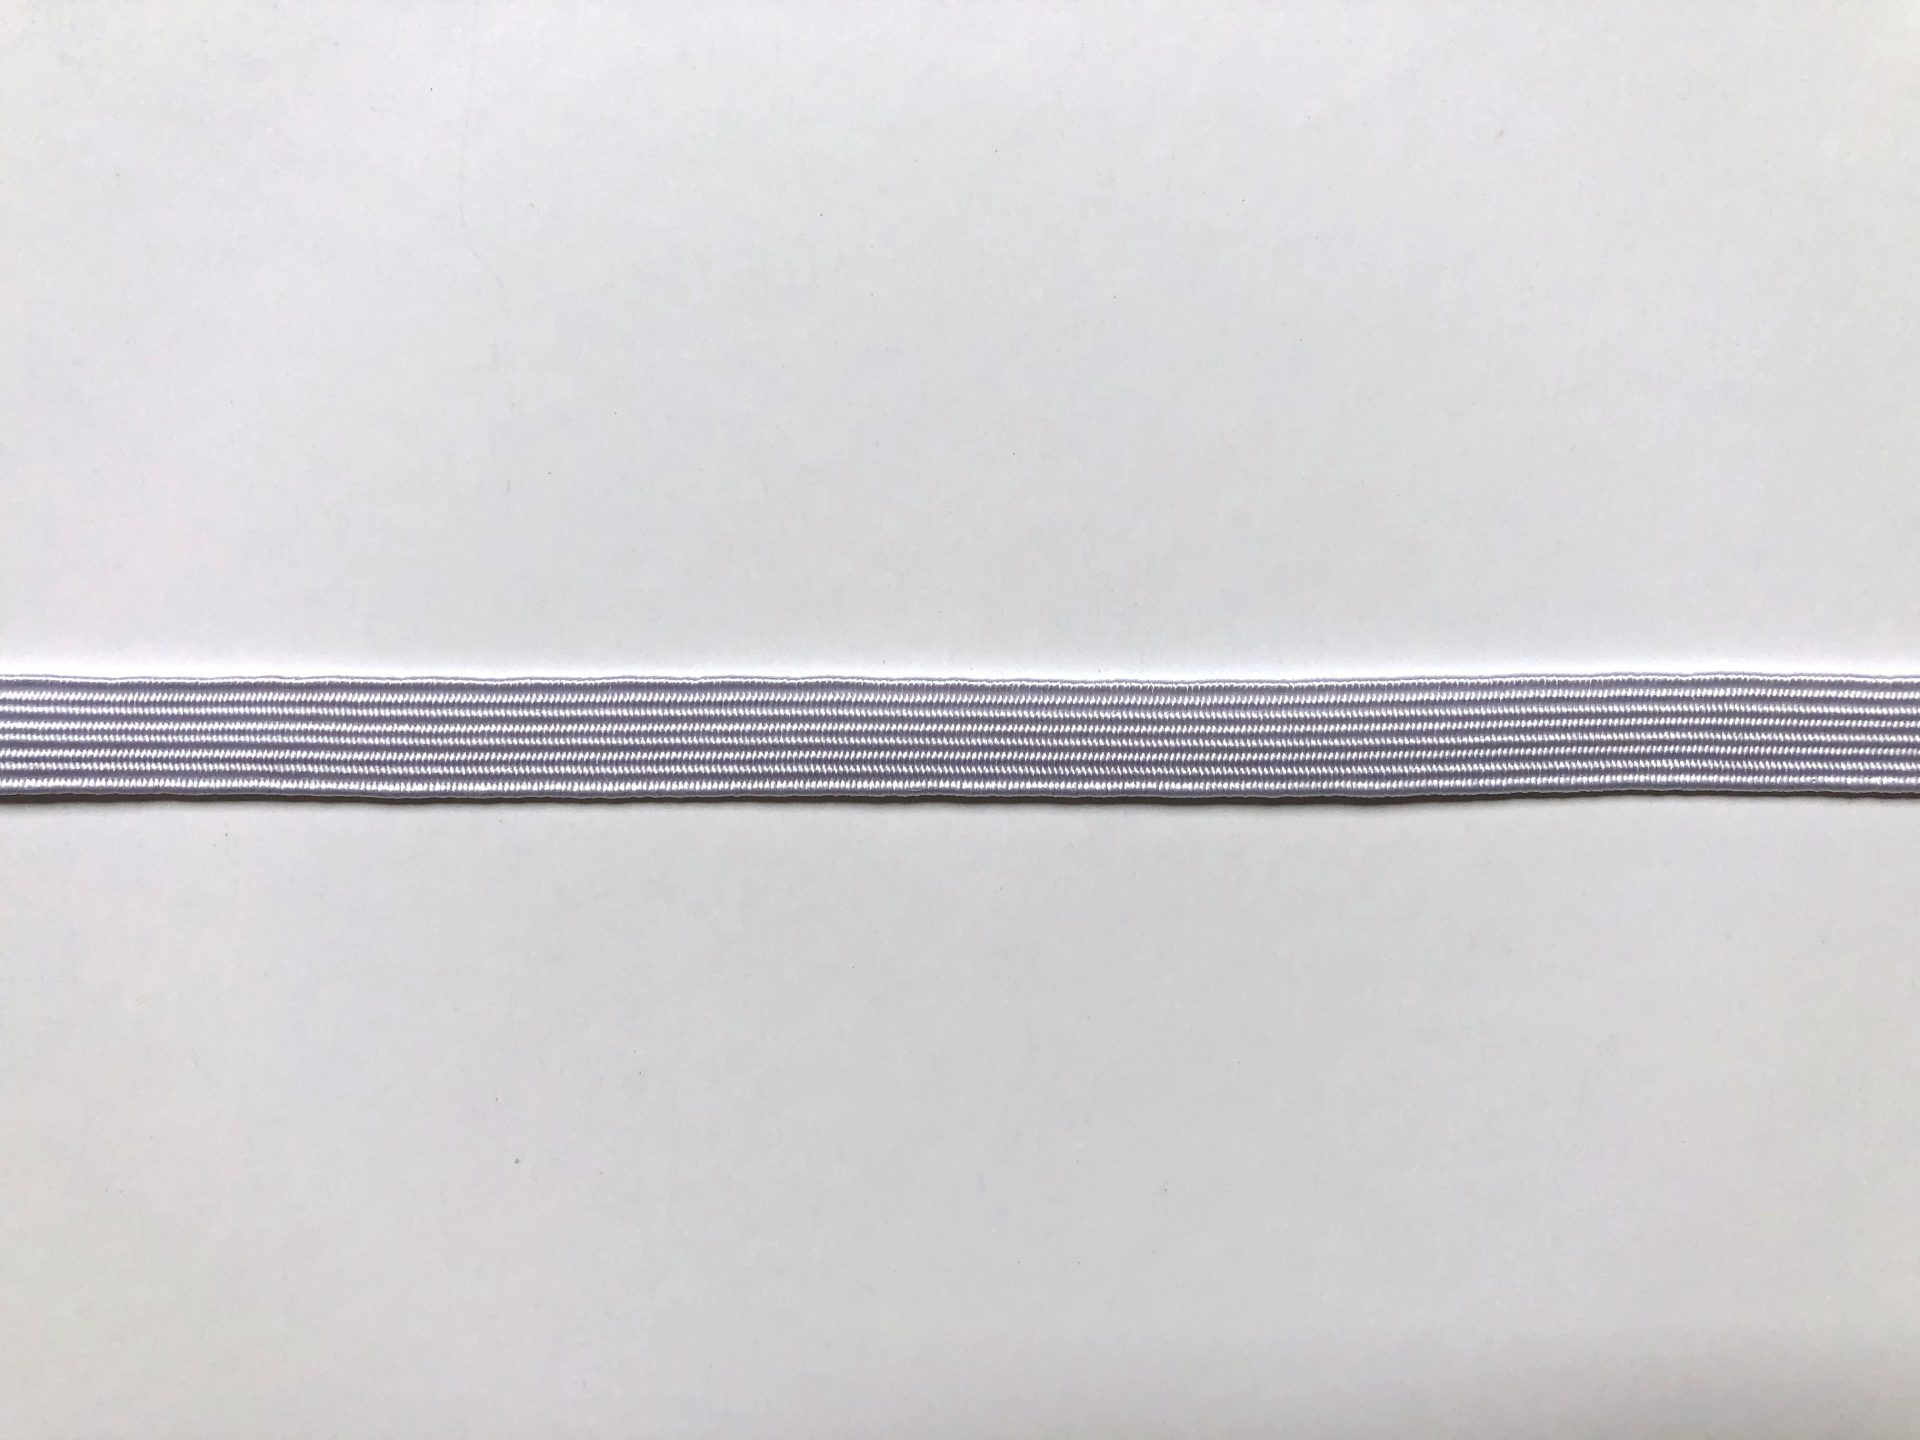 6mm braided elastic for face masks BE46